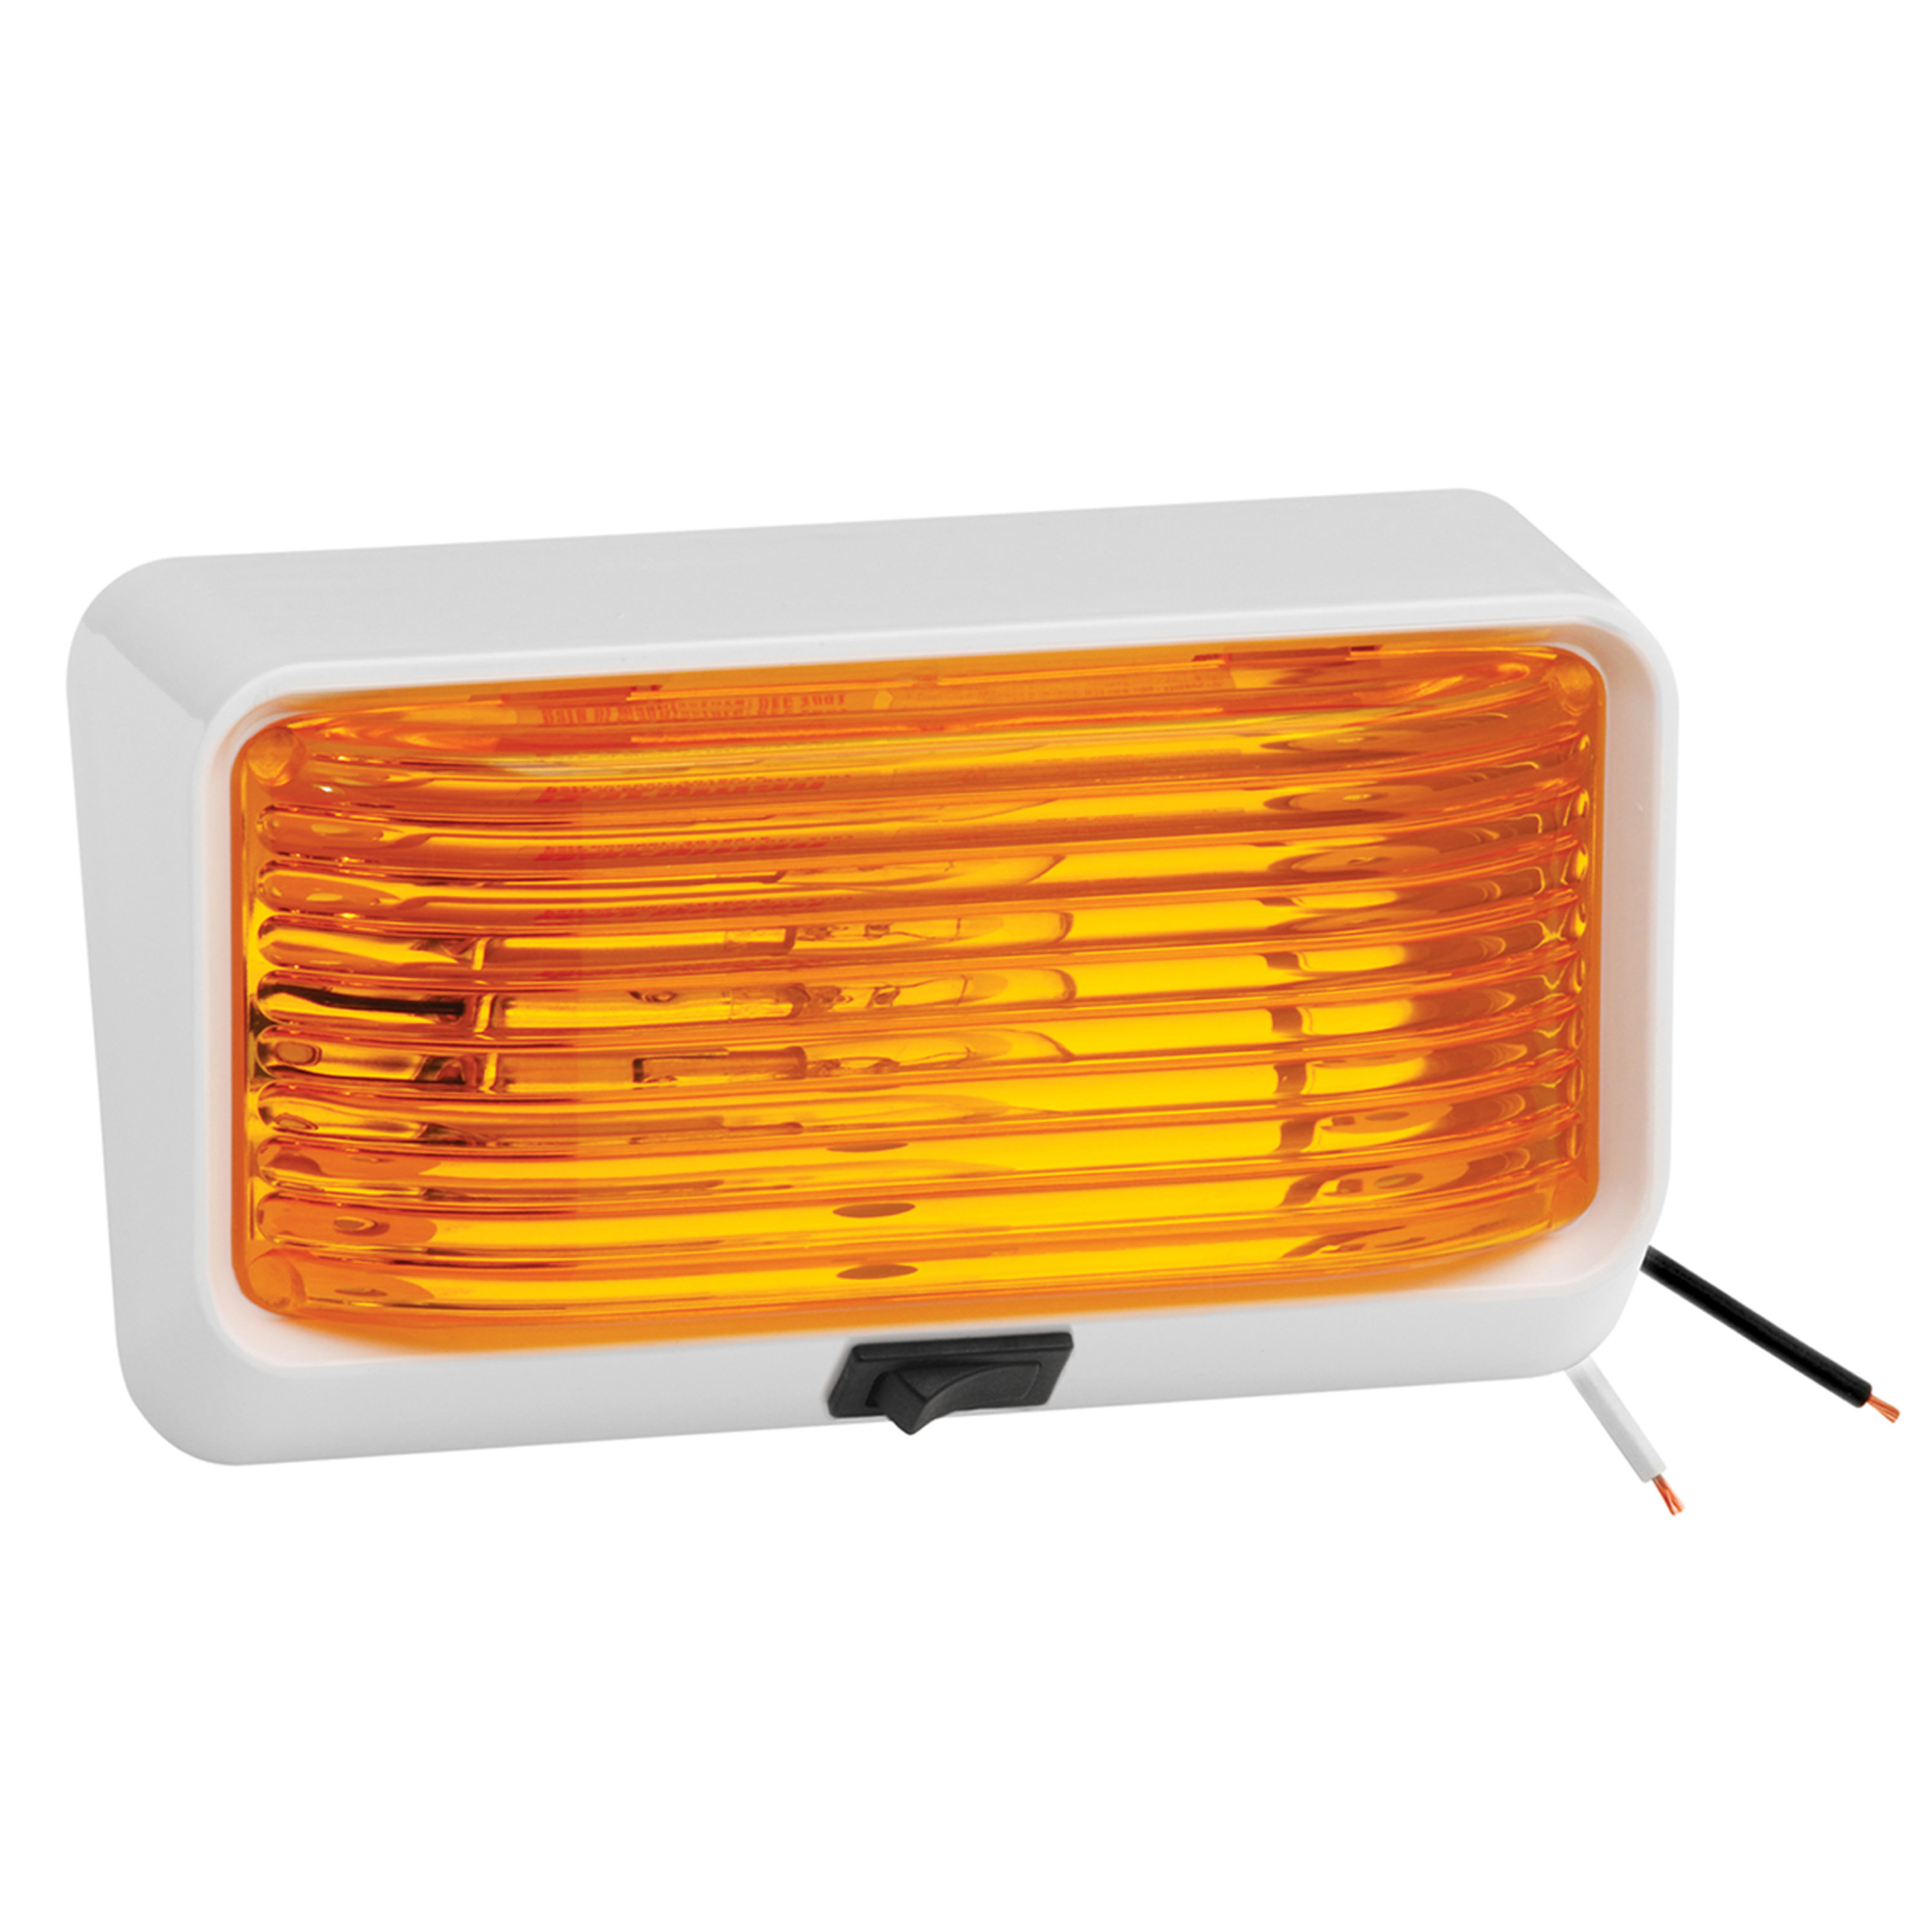 Bargman 34-78-518 Porch Light #78 Amber with White Base by Bargman